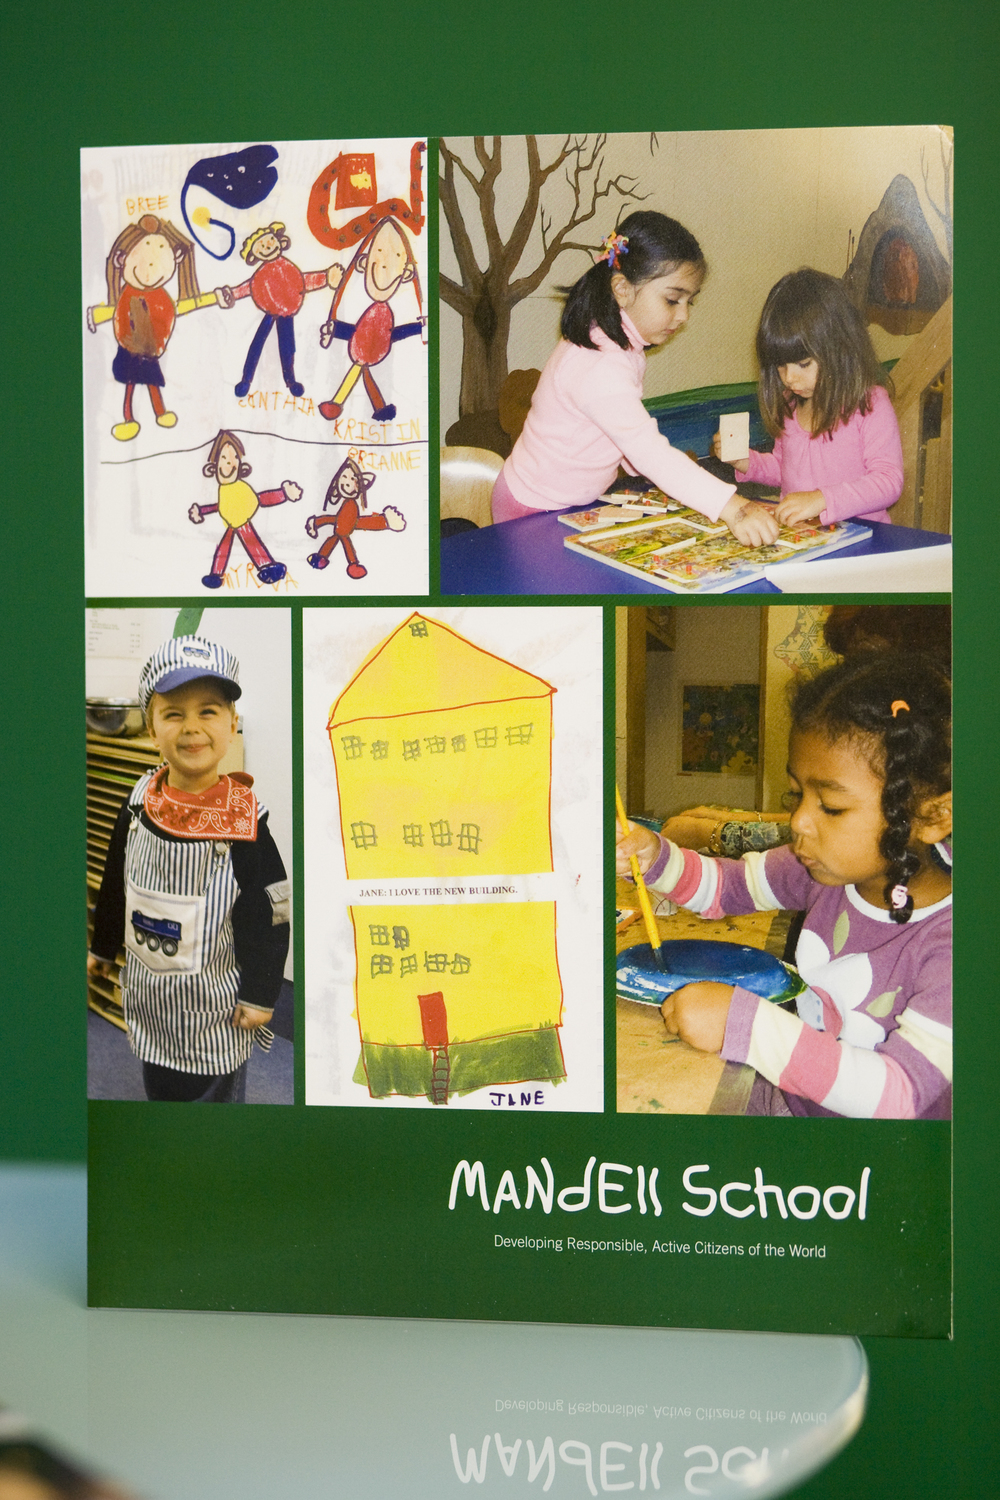 ceci_new_york_event_invitation_the_mandell_school_new_york_city_opening_creative_elementary_kindergarden_middle_school_nyc-23.jpg